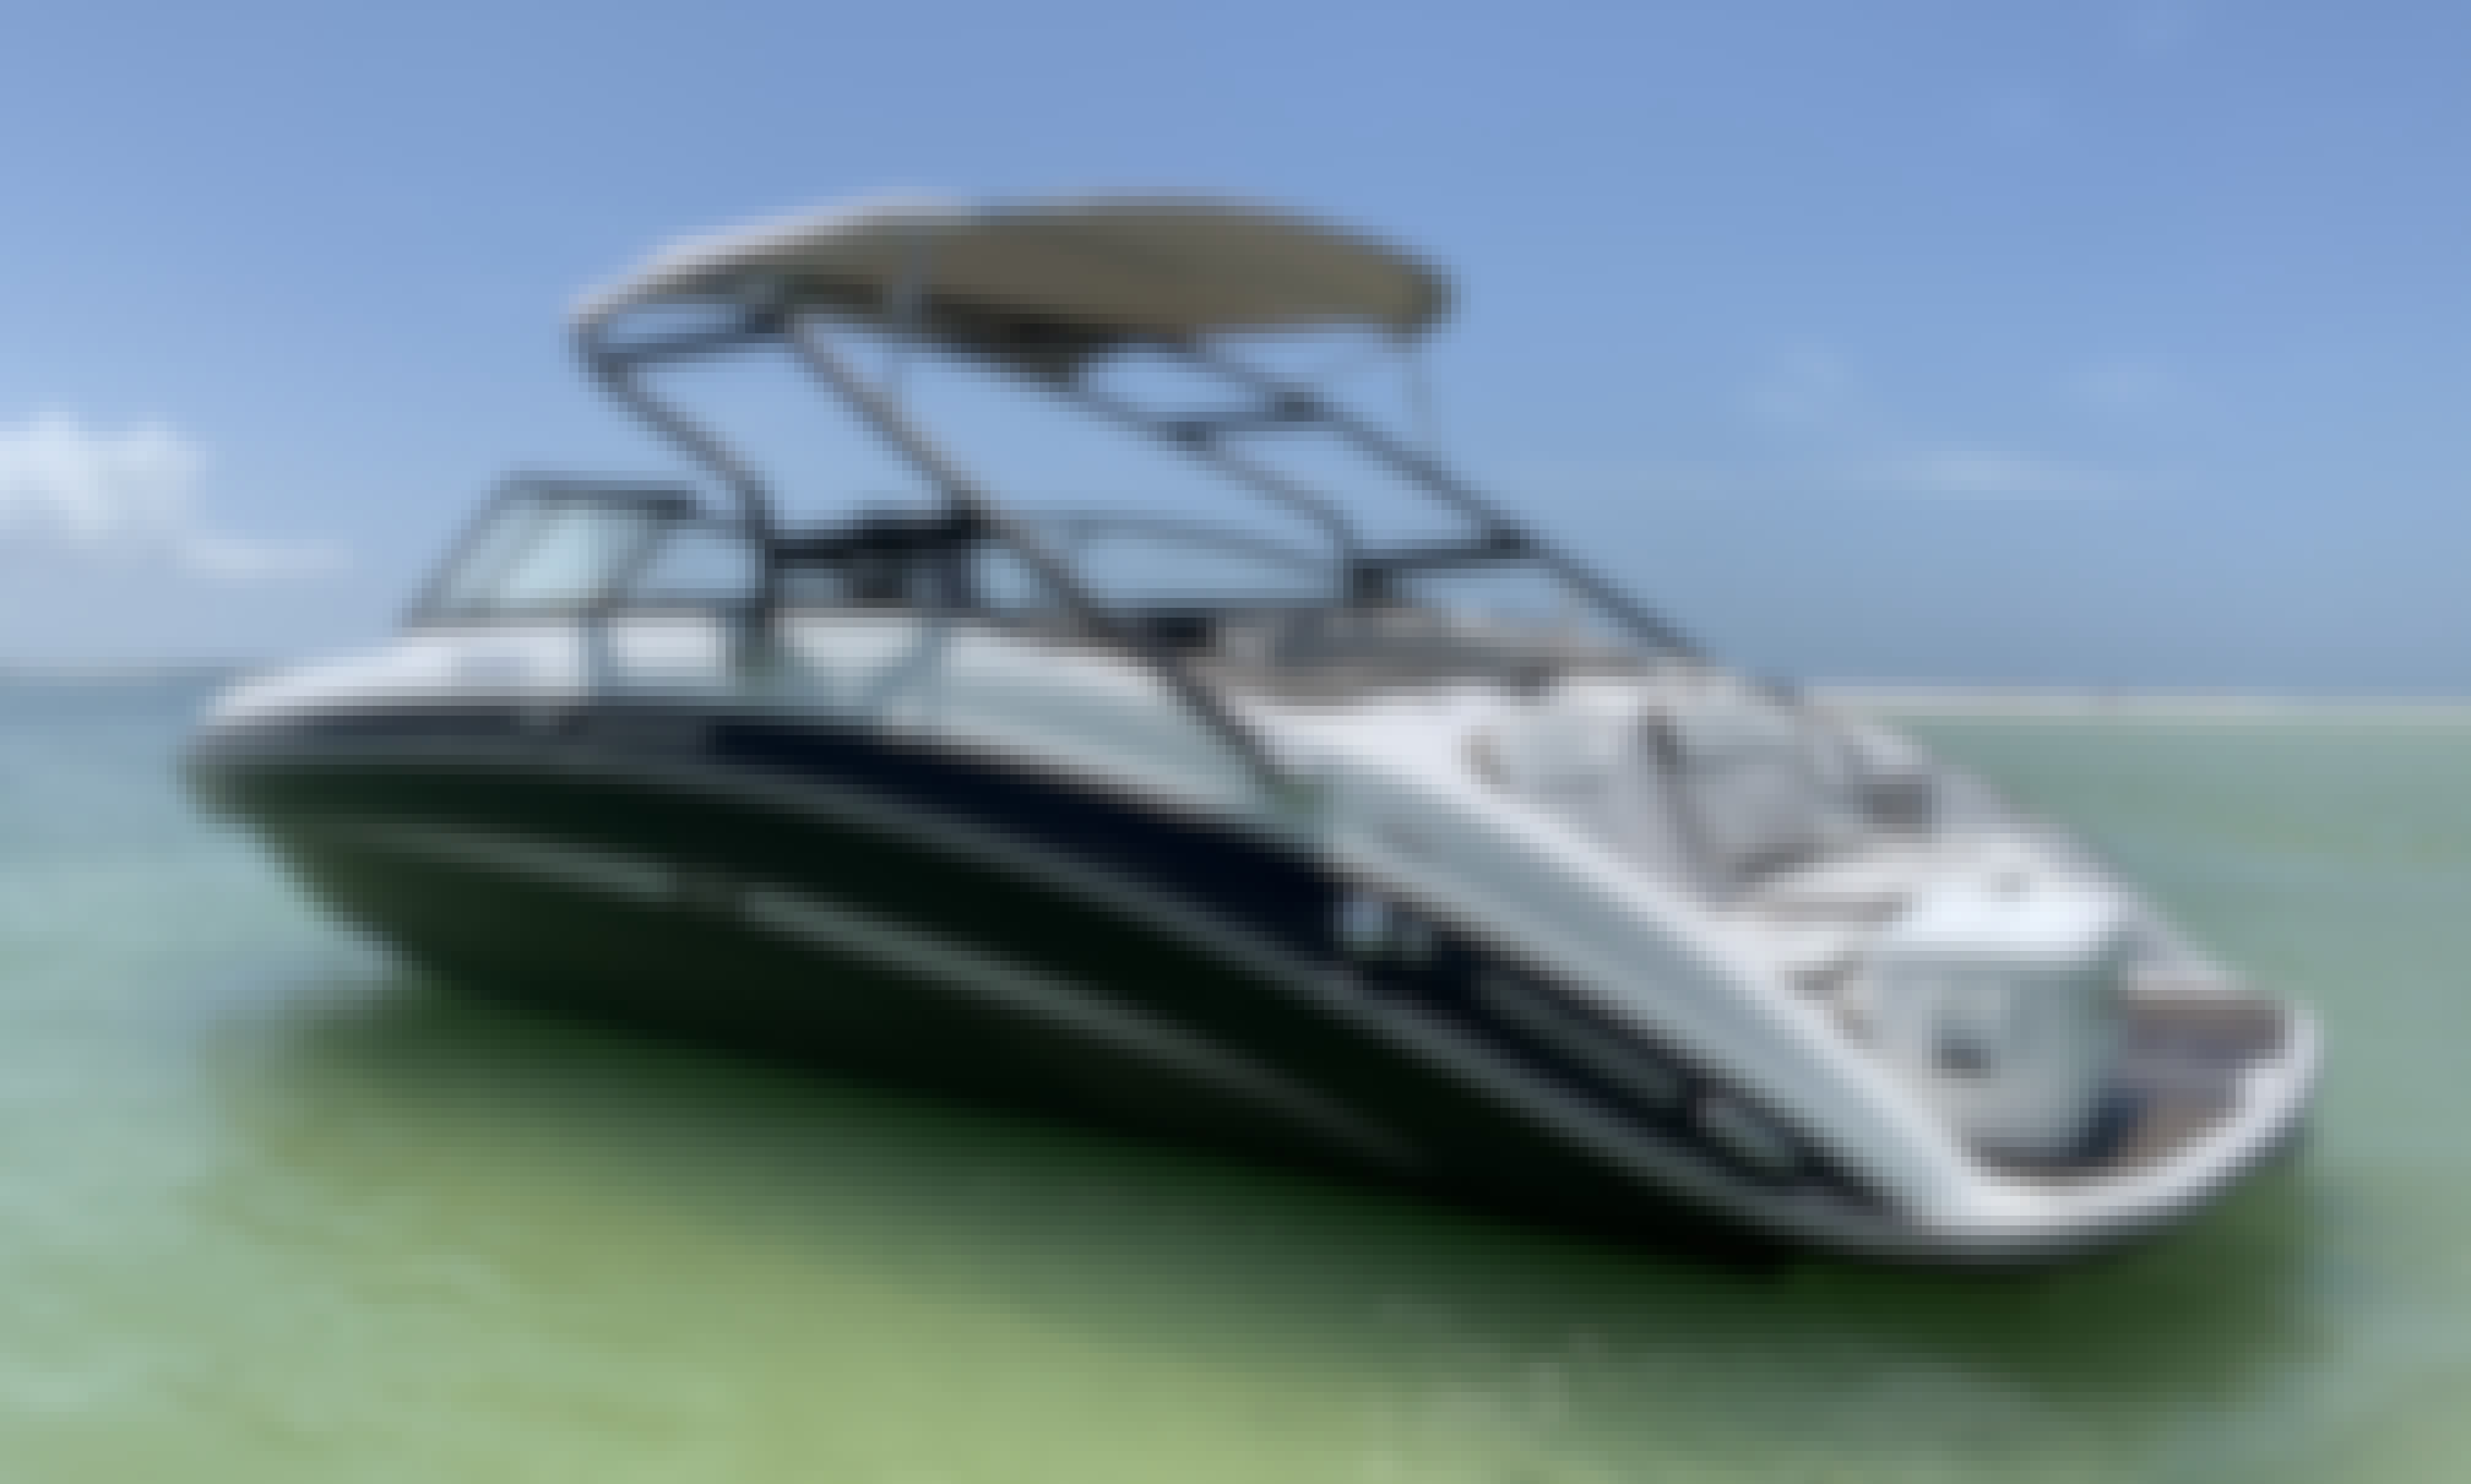 24ft Yamaha Bowrider in Clearwater, St. Petes, Tampa